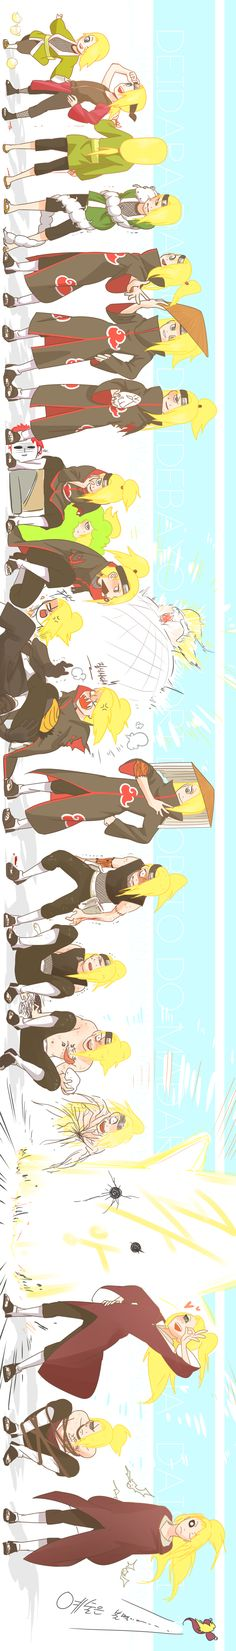 Deidara through his life... This is amazing! ❤❤❤